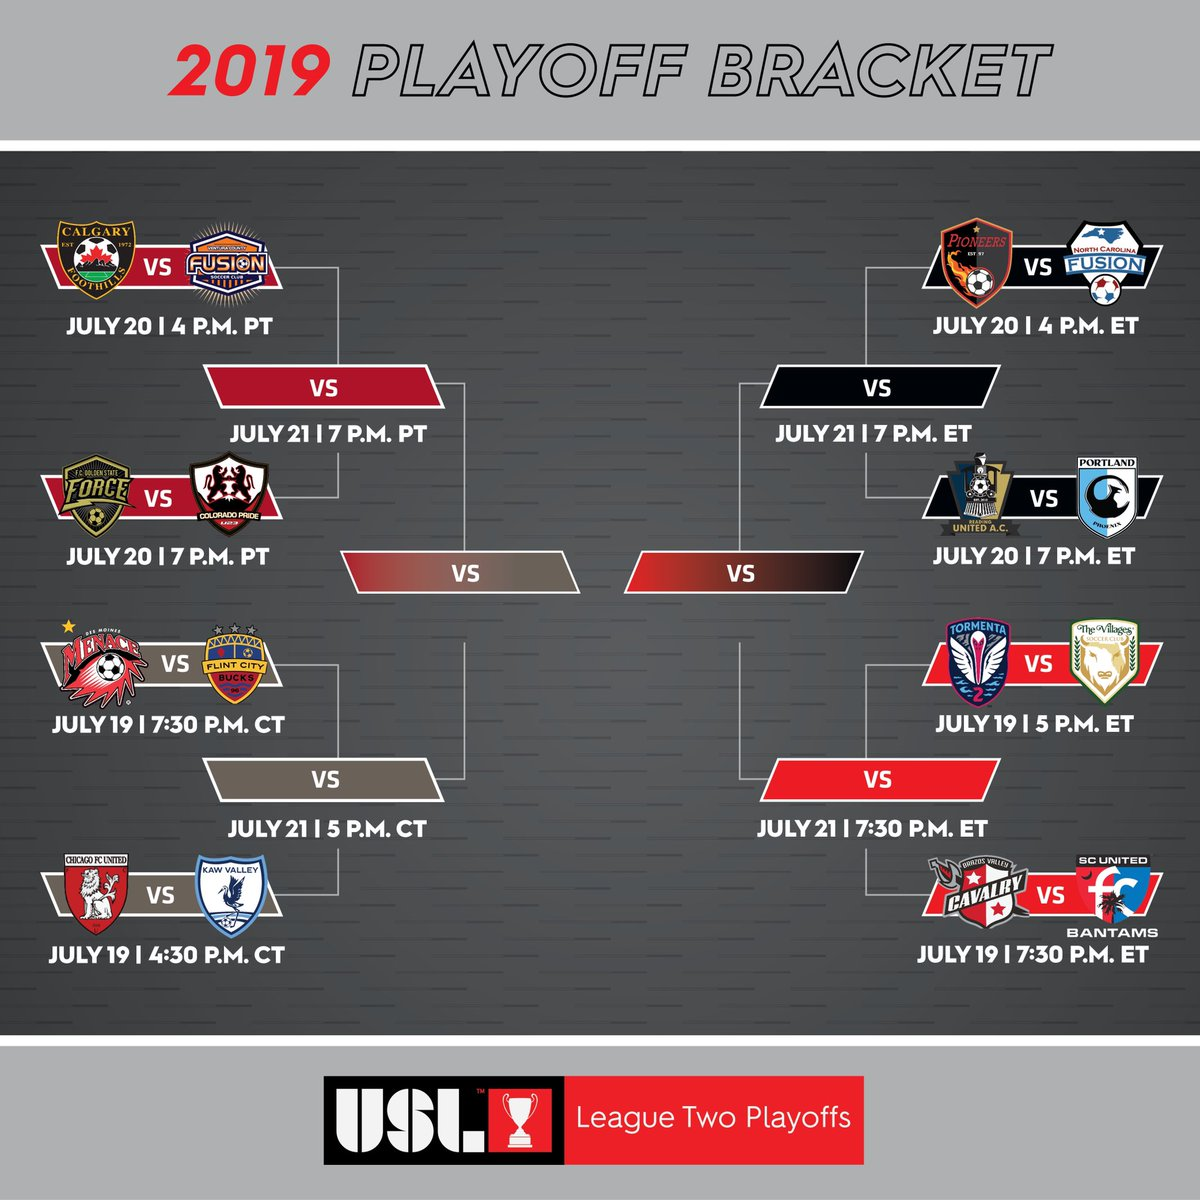 Bracket Playoffs 2019